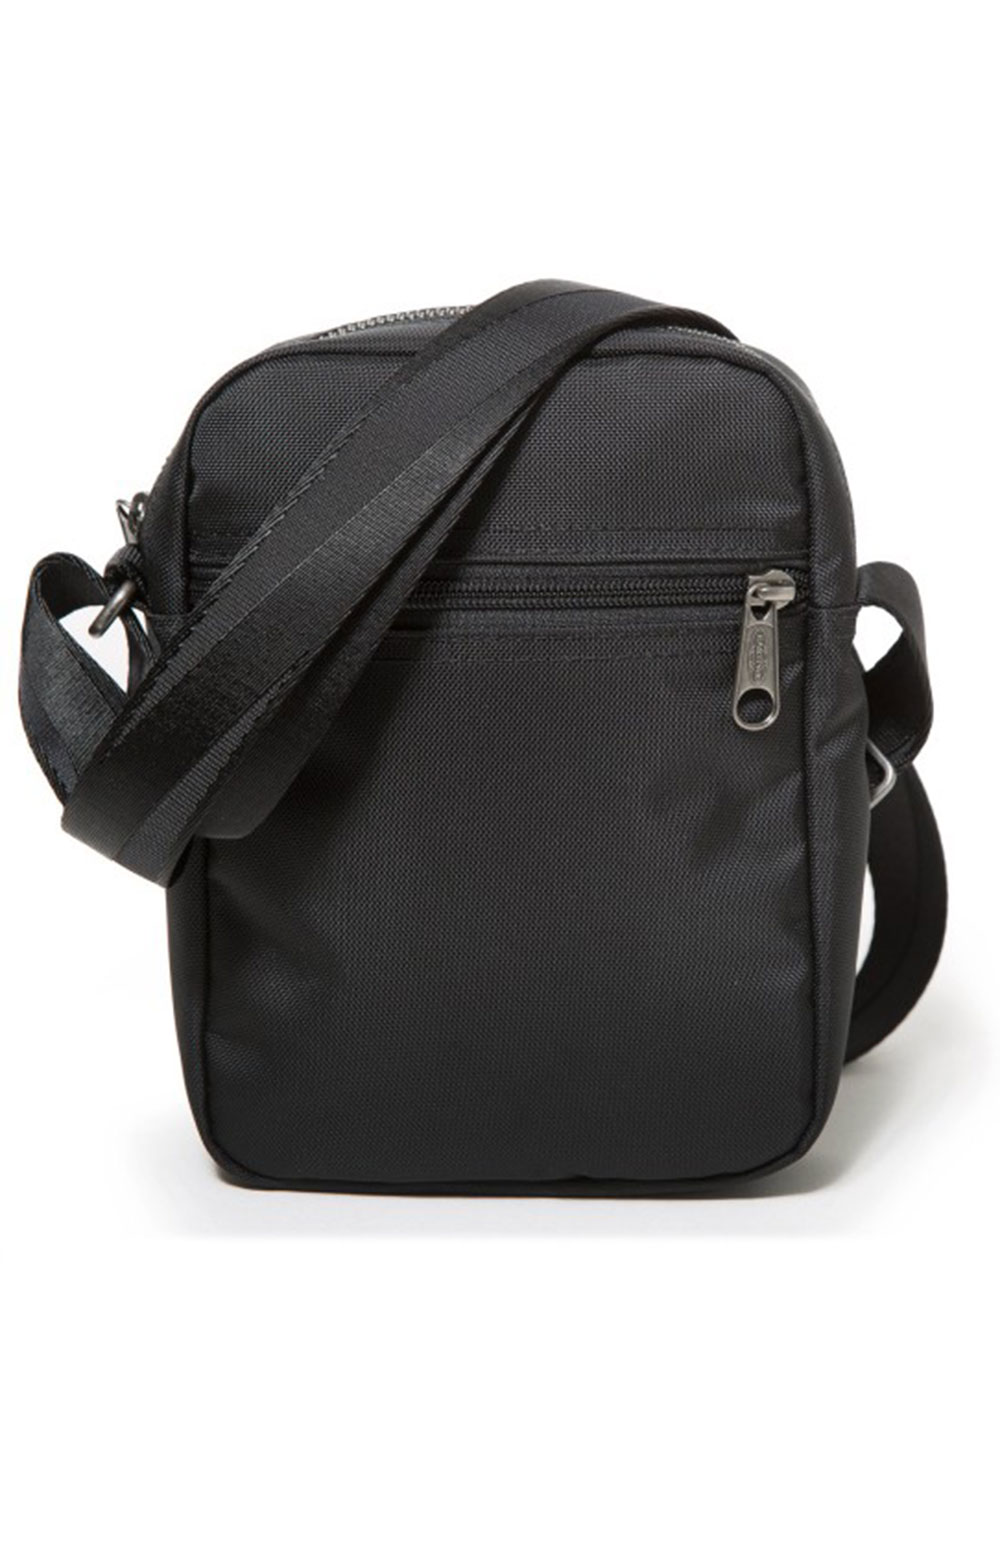 The One Bag - Constructed Black 2